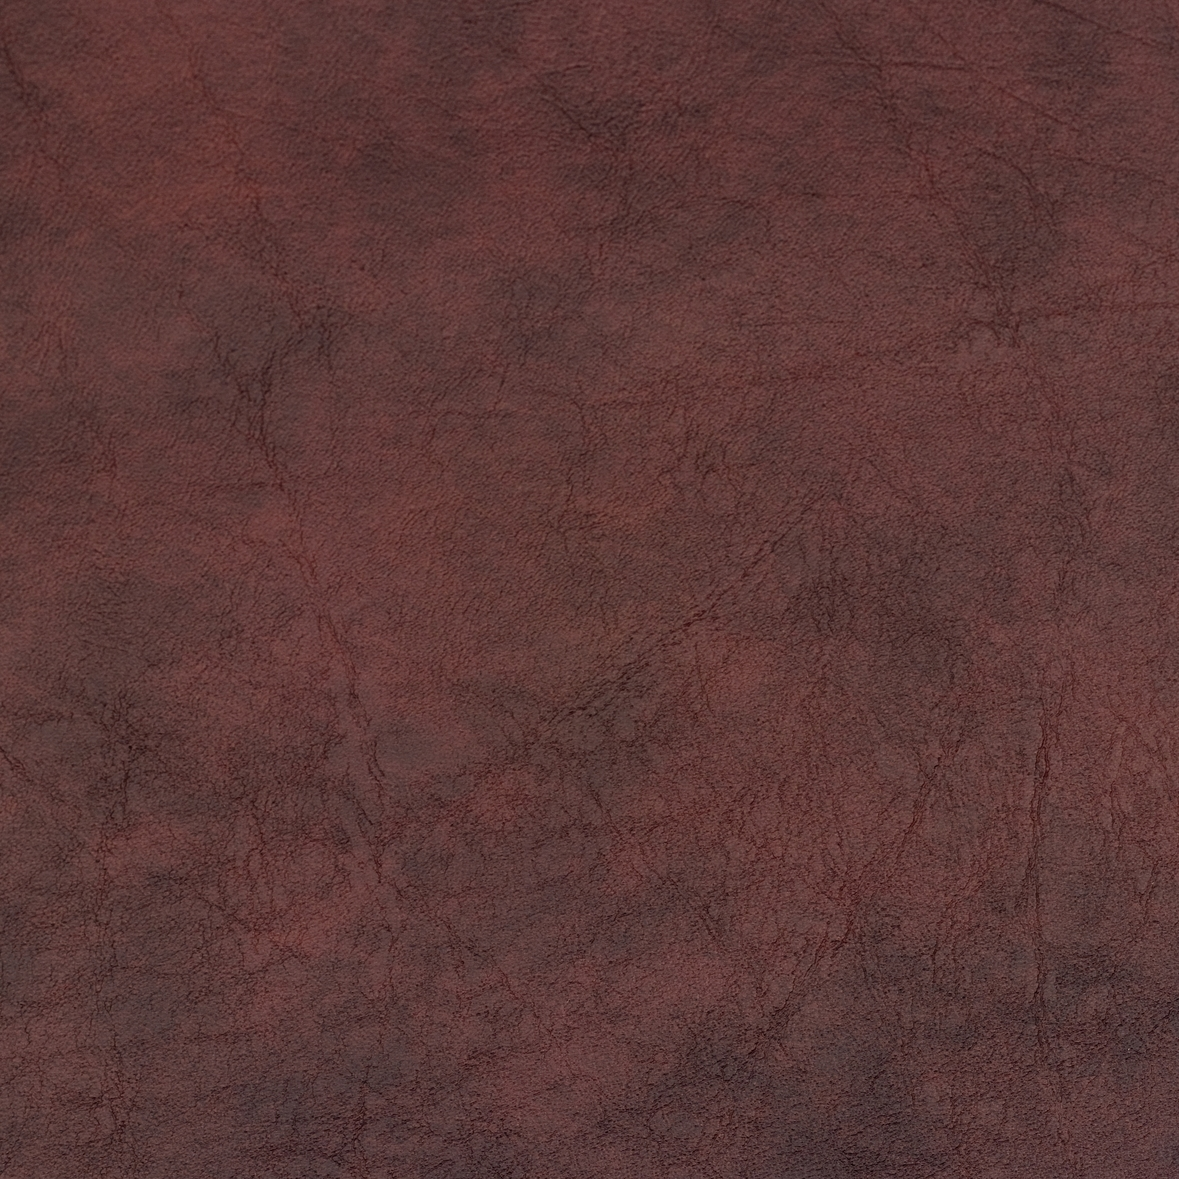 Cranberry Leather-like Vinyl